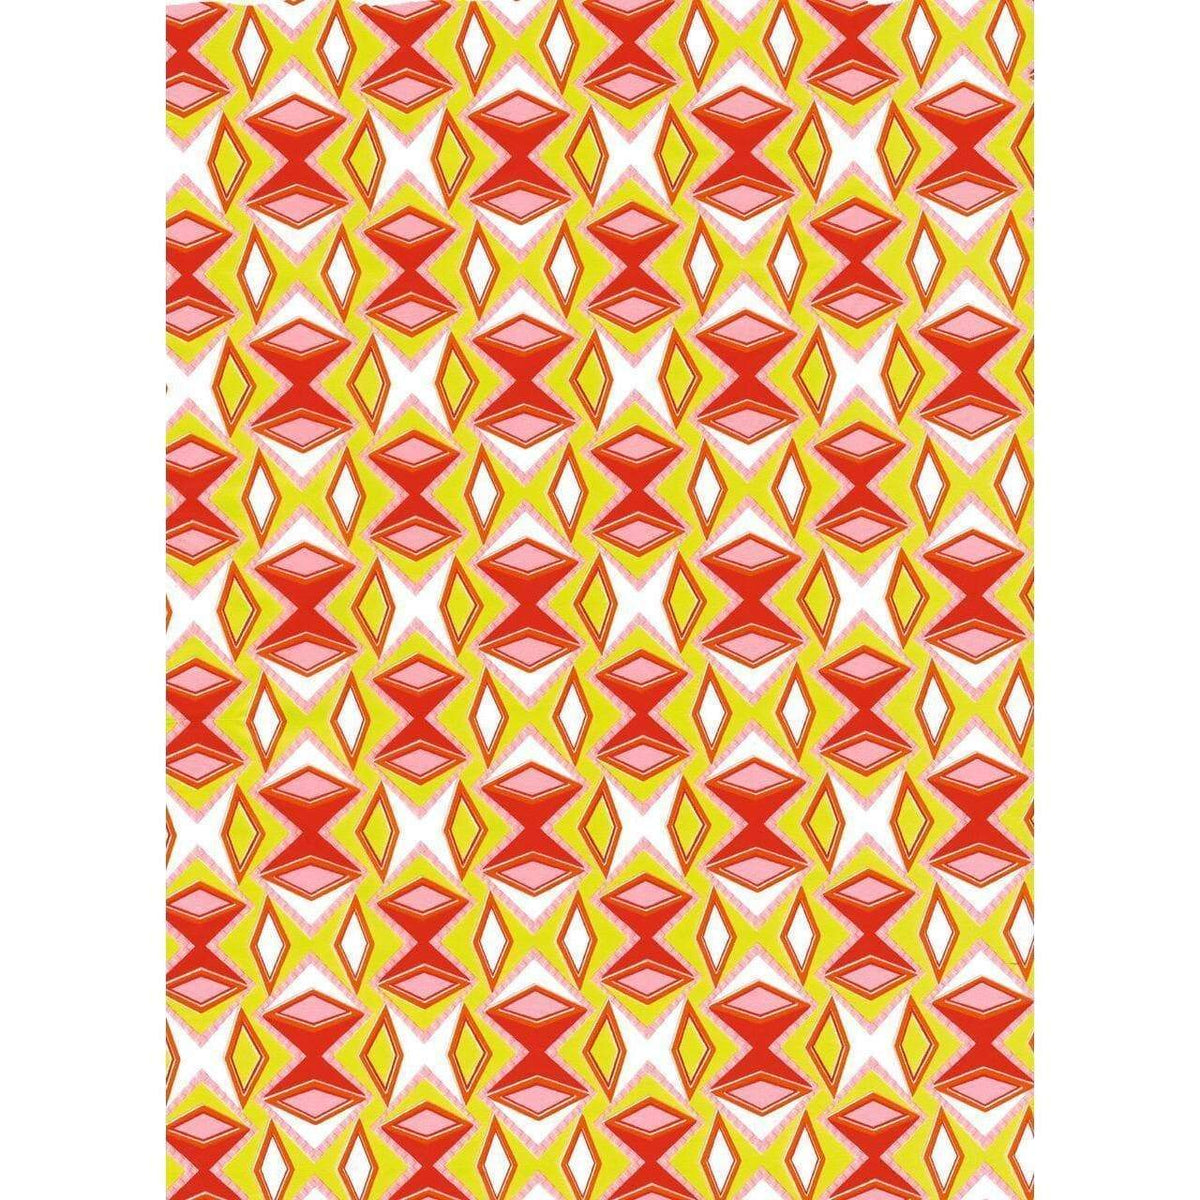 Papel Decopatch FDA635O Puzzle amarillo y naranja DECOPATCH CENTROARTESANO